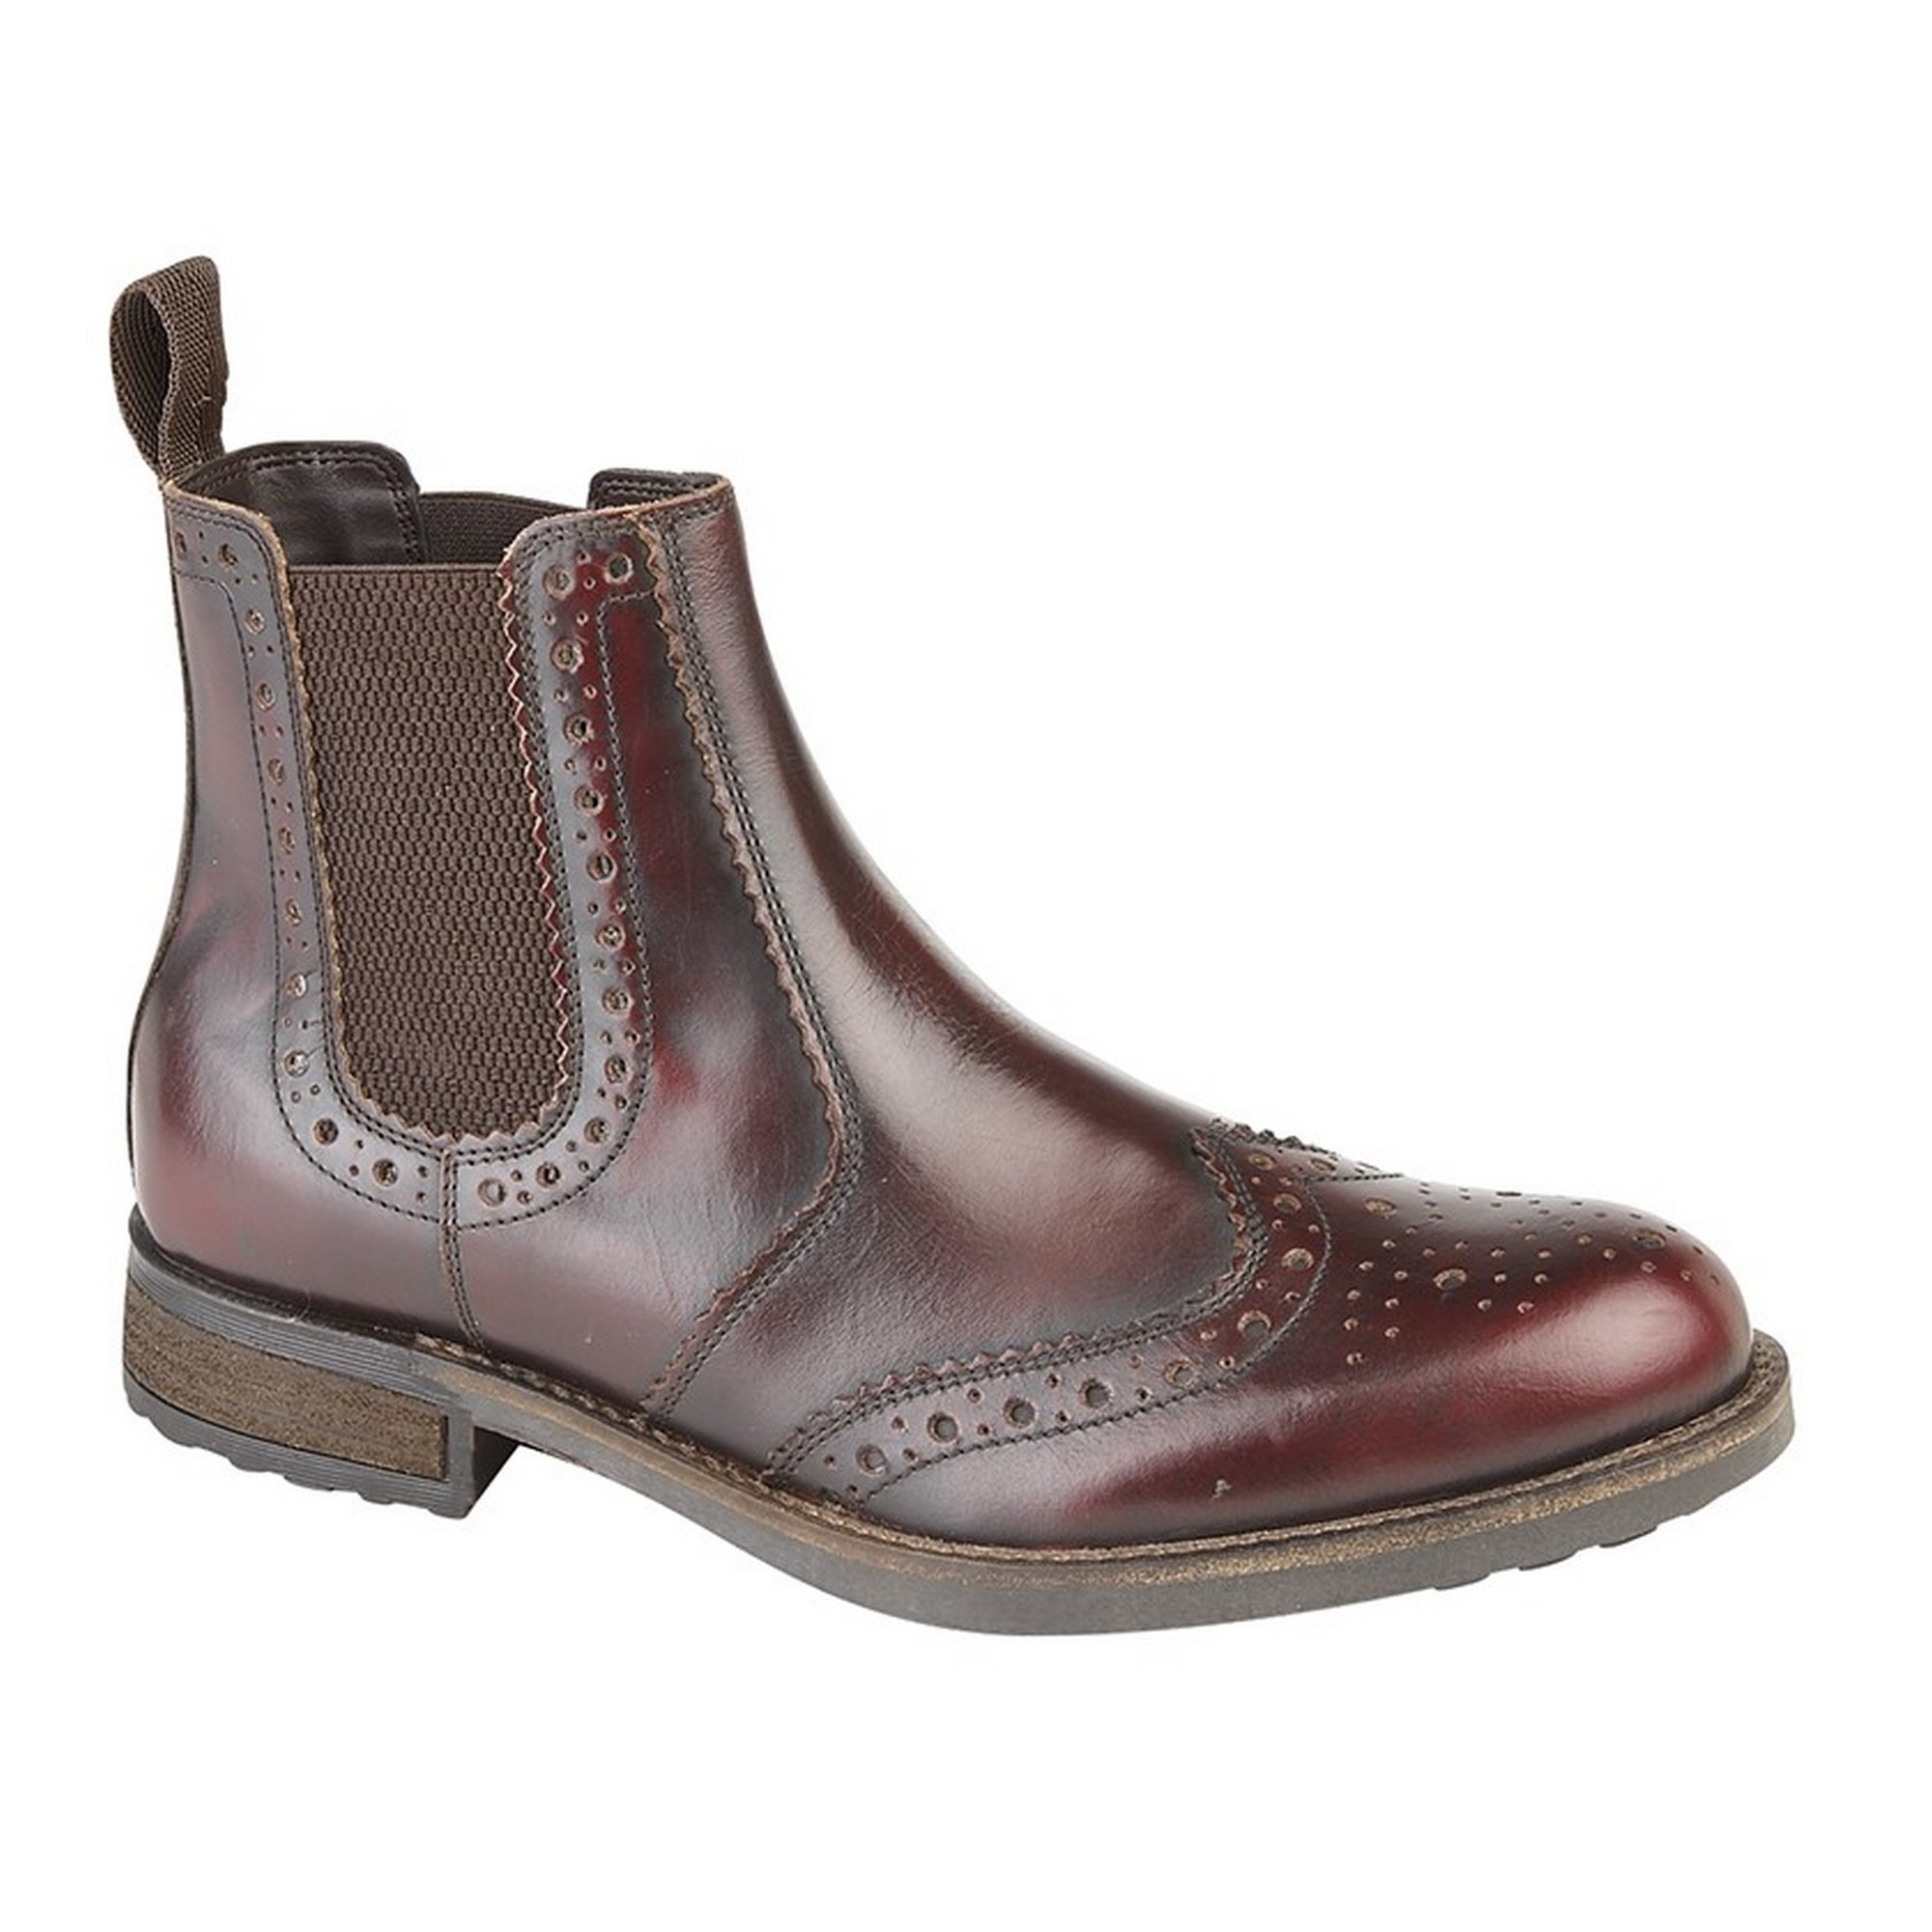 06c40b6e31a Cheap Leather Brogue Ankle Boots, find Leather Brogue Ankle Boots ...